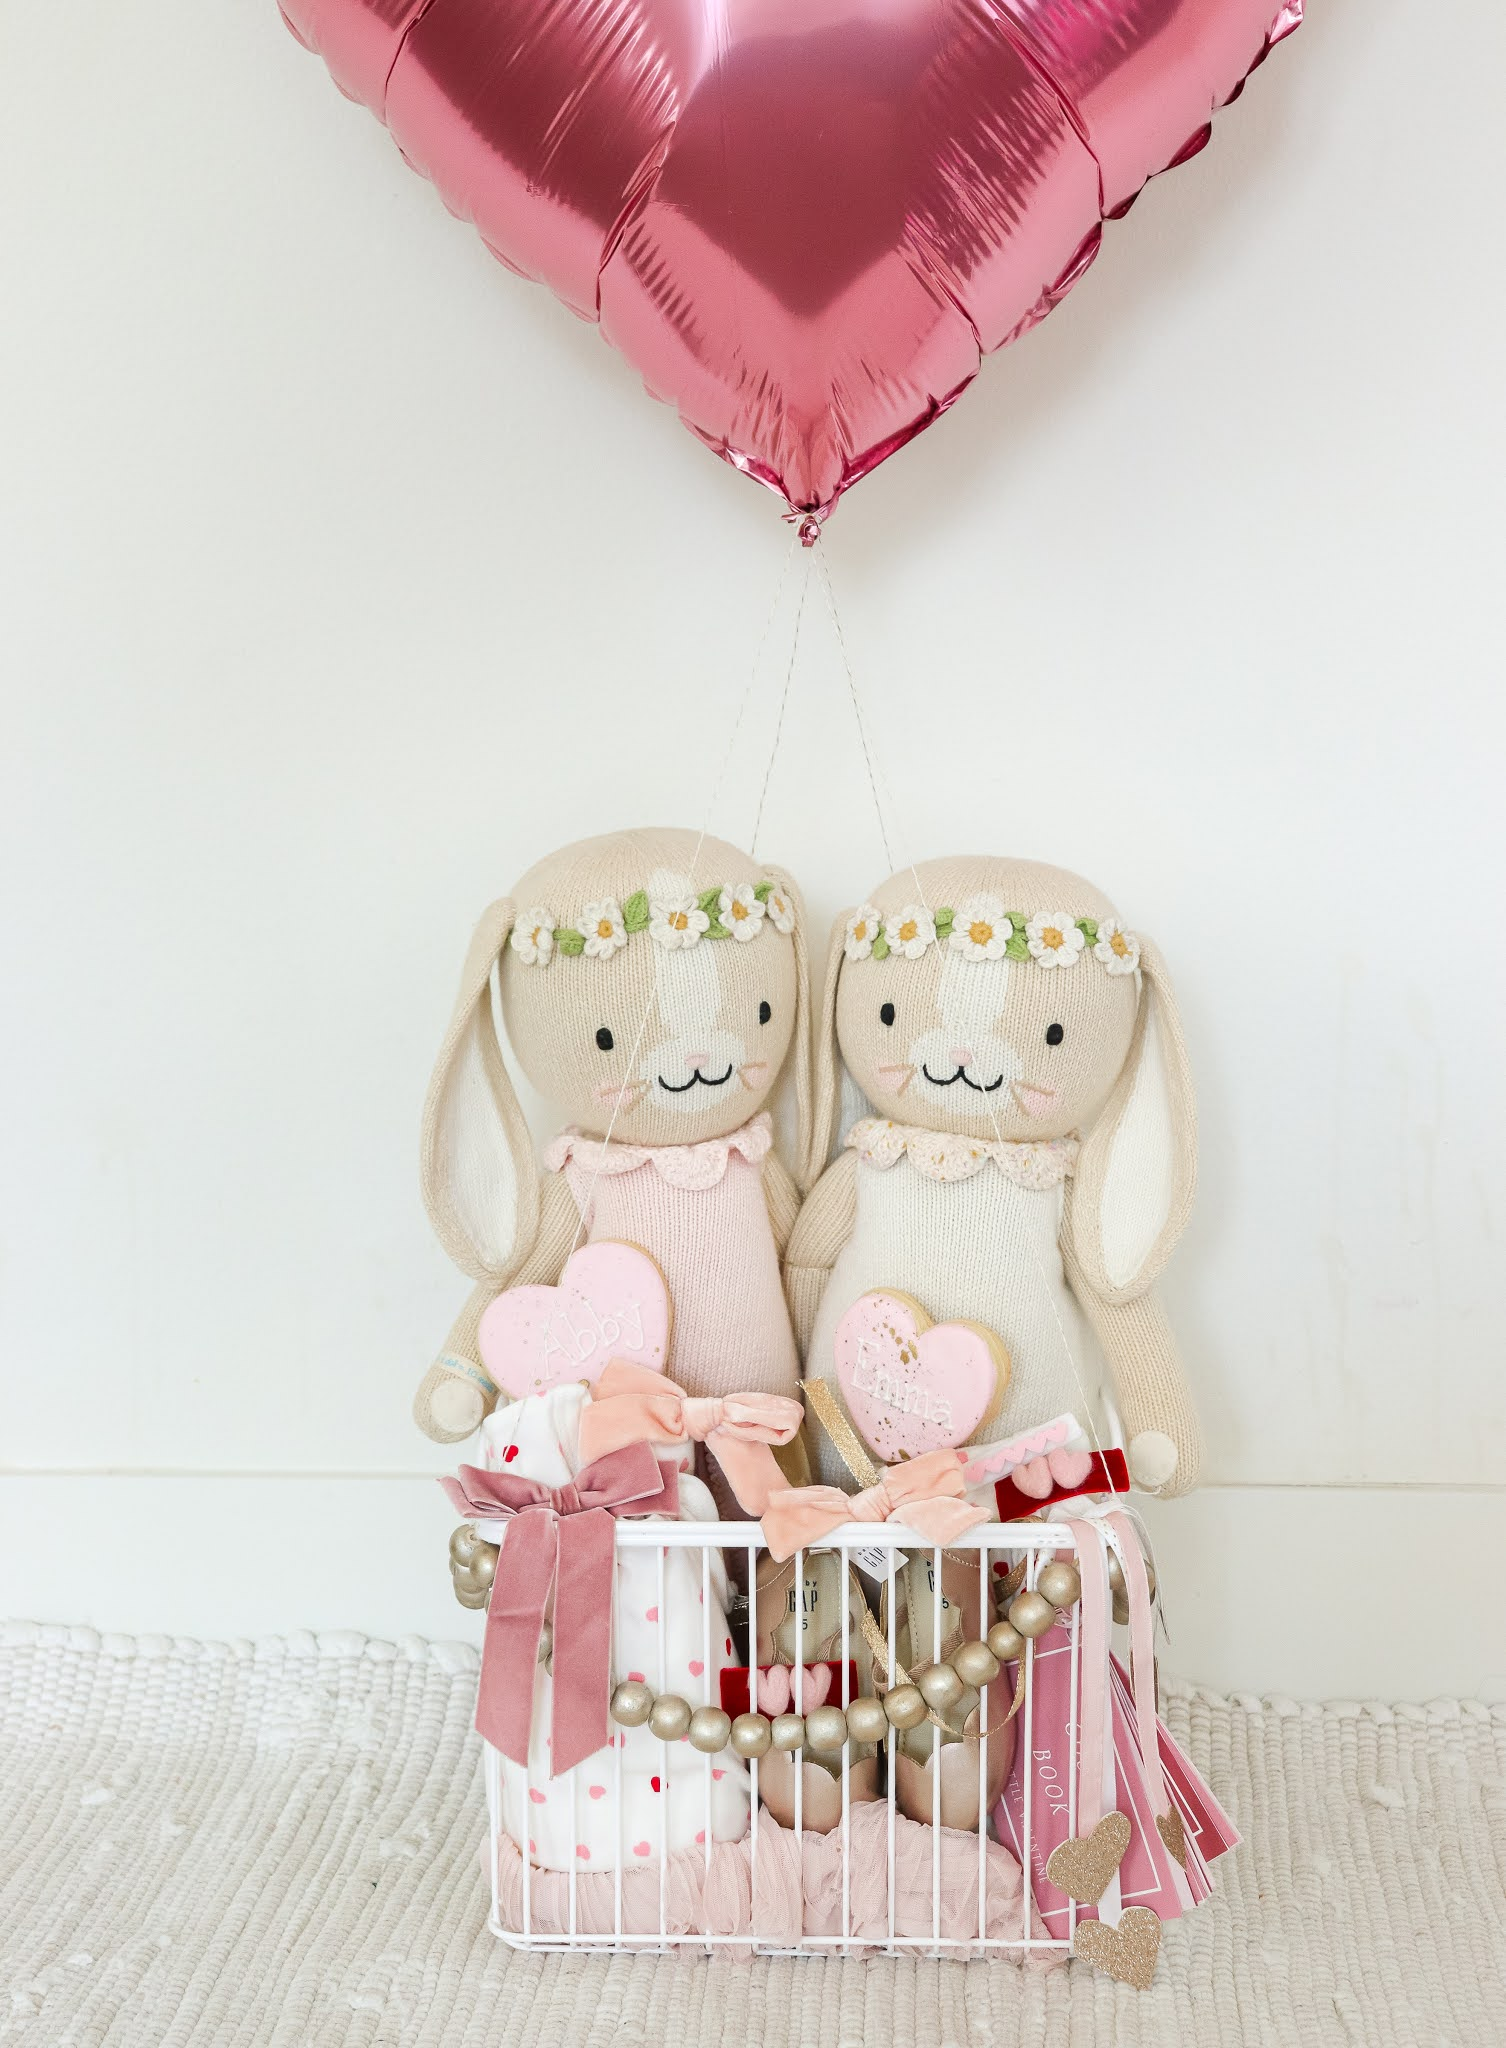 https://www.mamajots.com/2020/01/valentines-day-gift-basket-girls.html